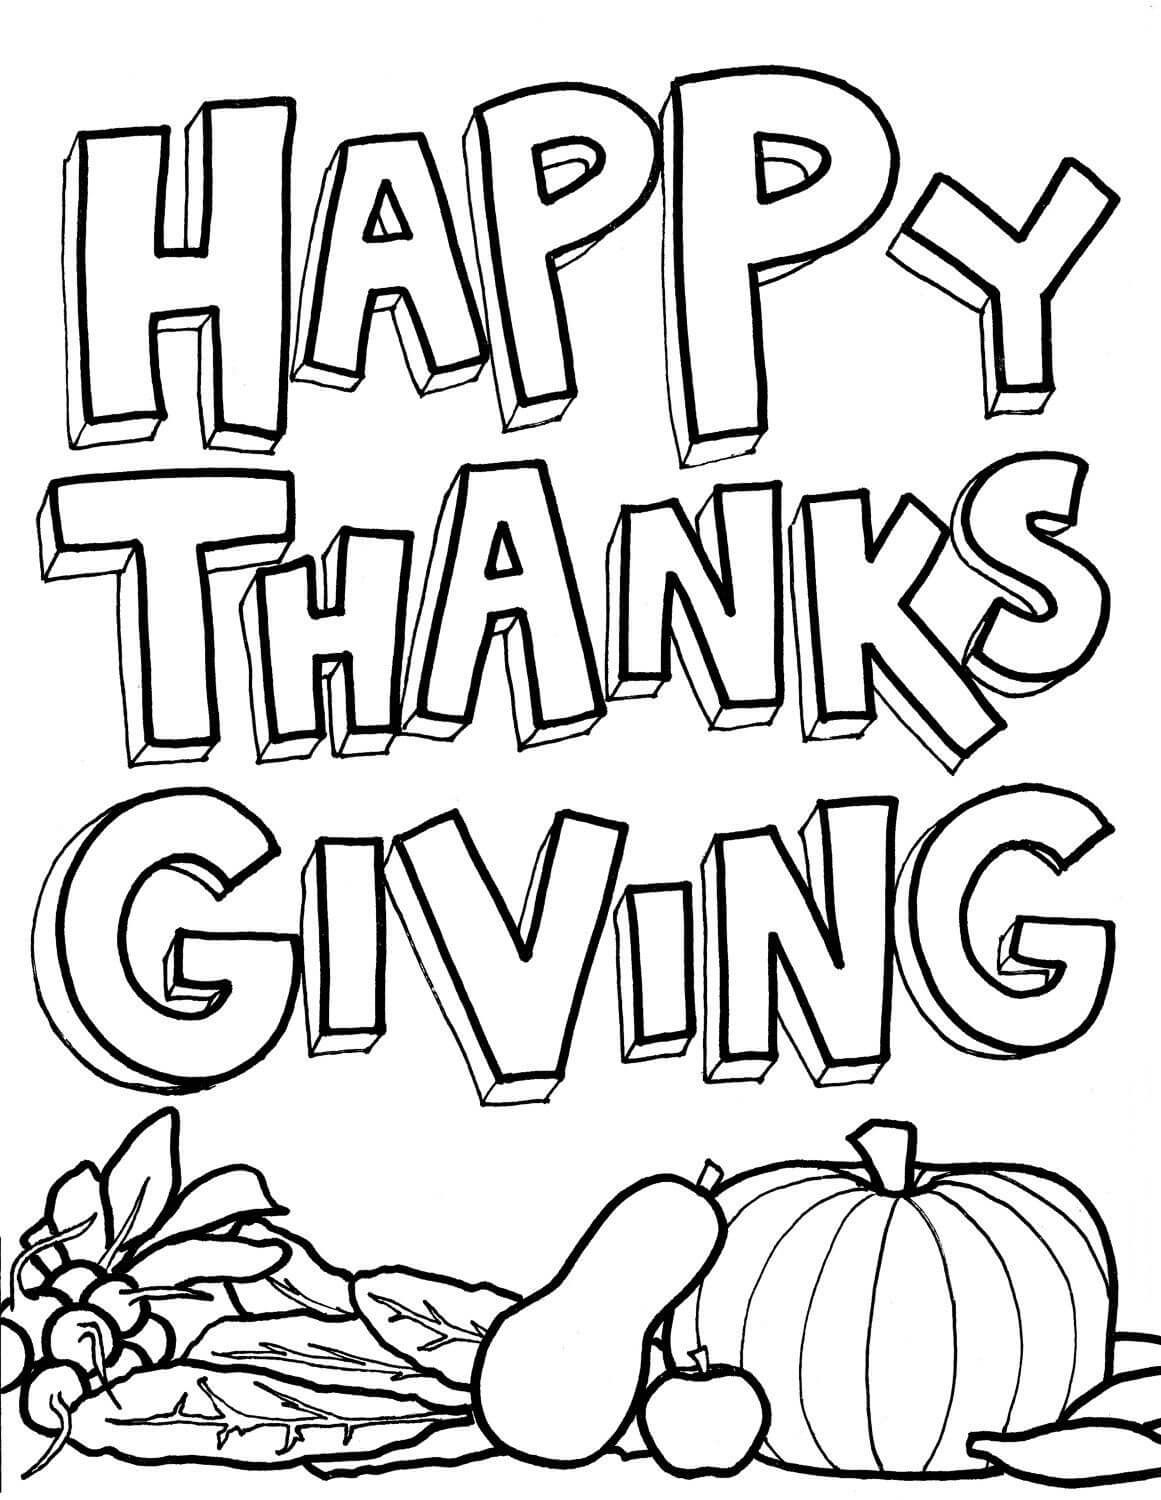 15 Printable Thanksgiving Coloring Pages | Thanksgiving coloring ...